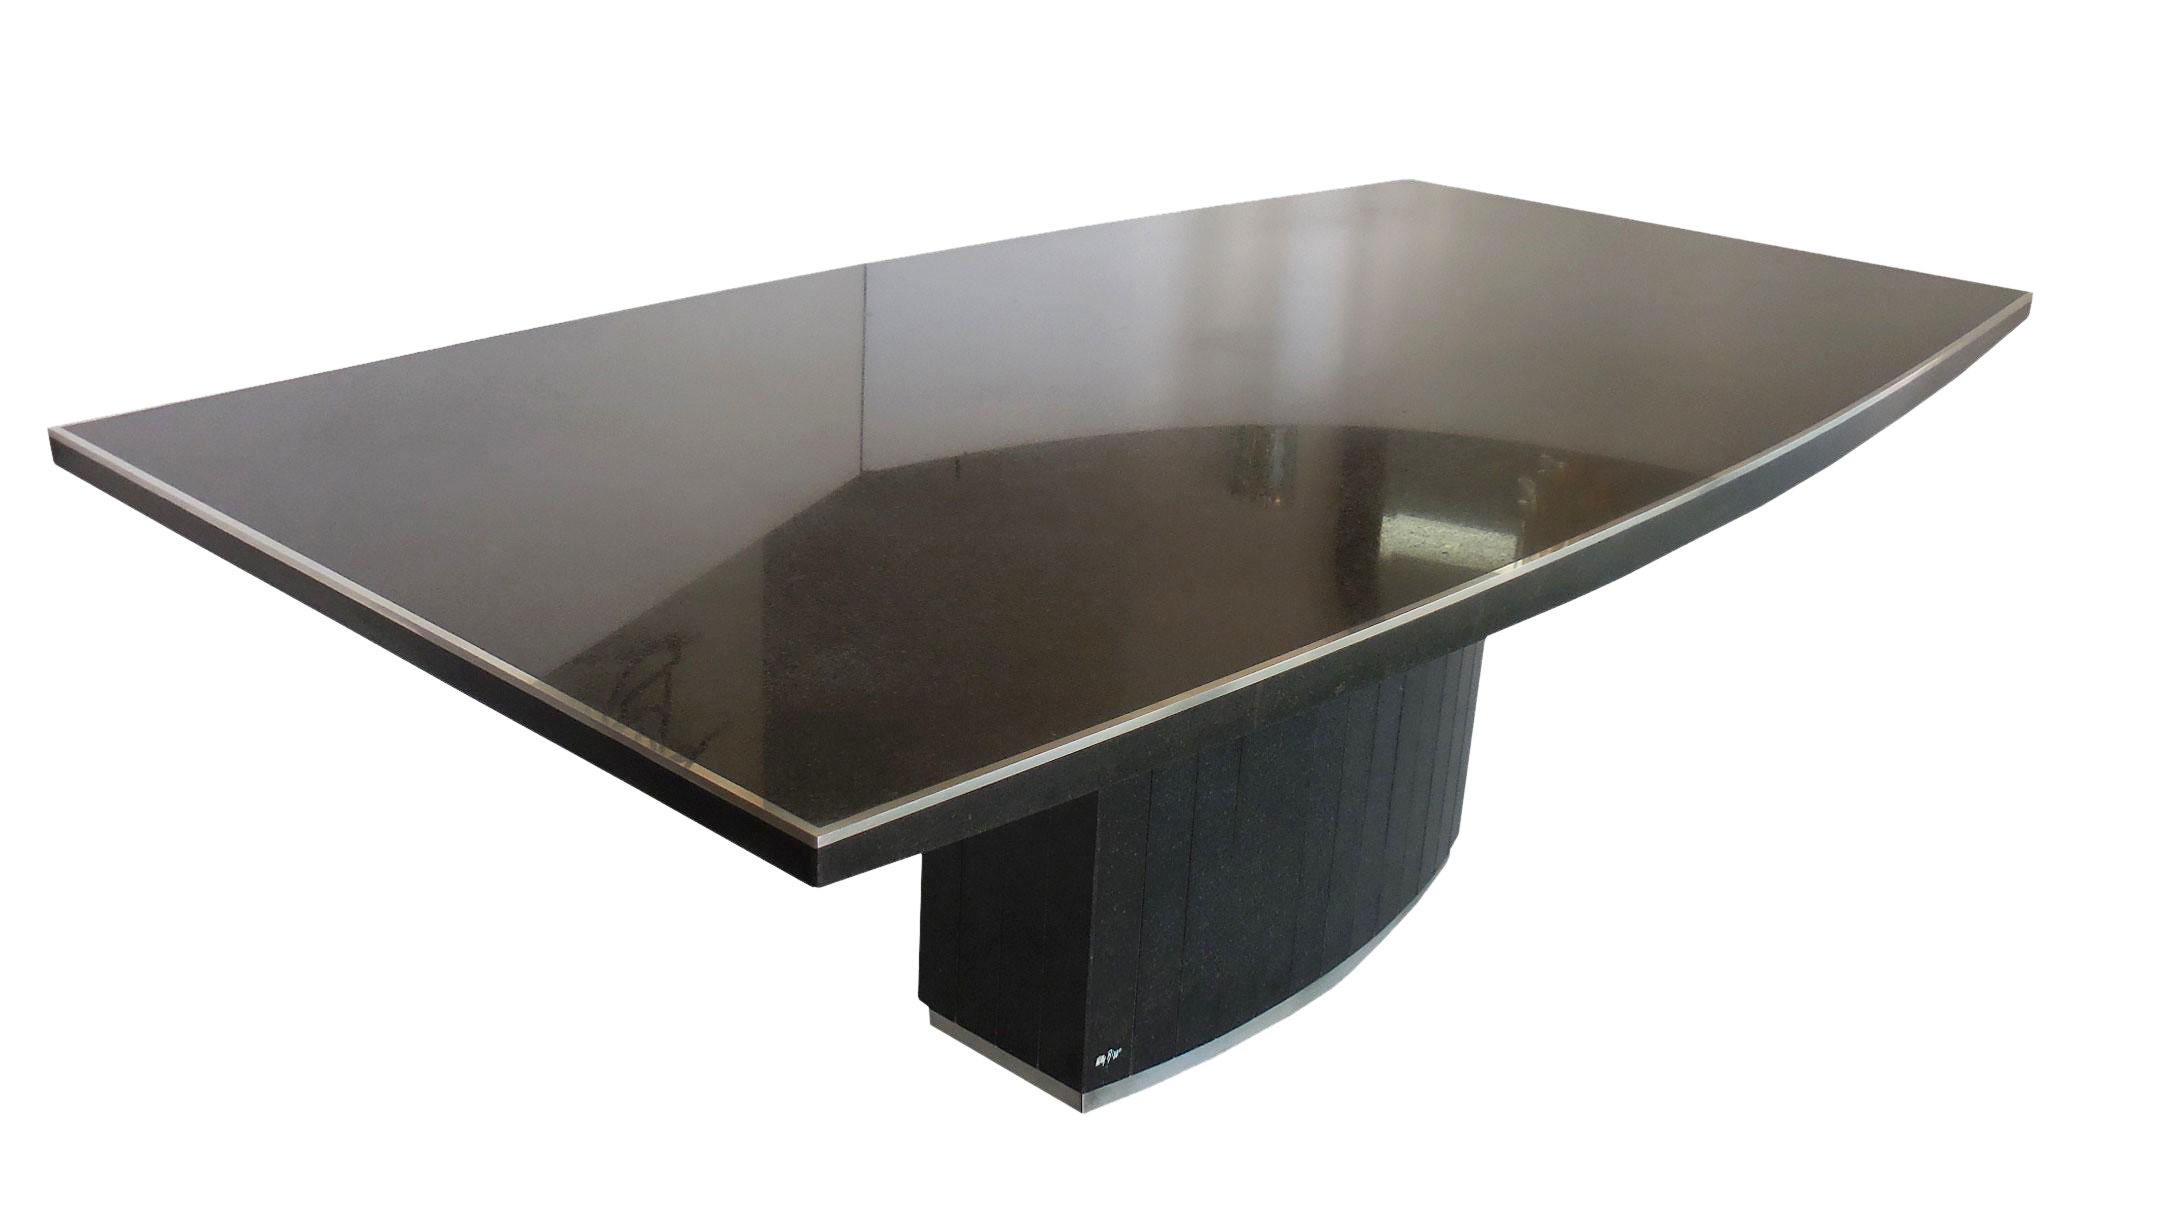 rare black granite and stainless steel dining table by willy rizzo image 1 of 8